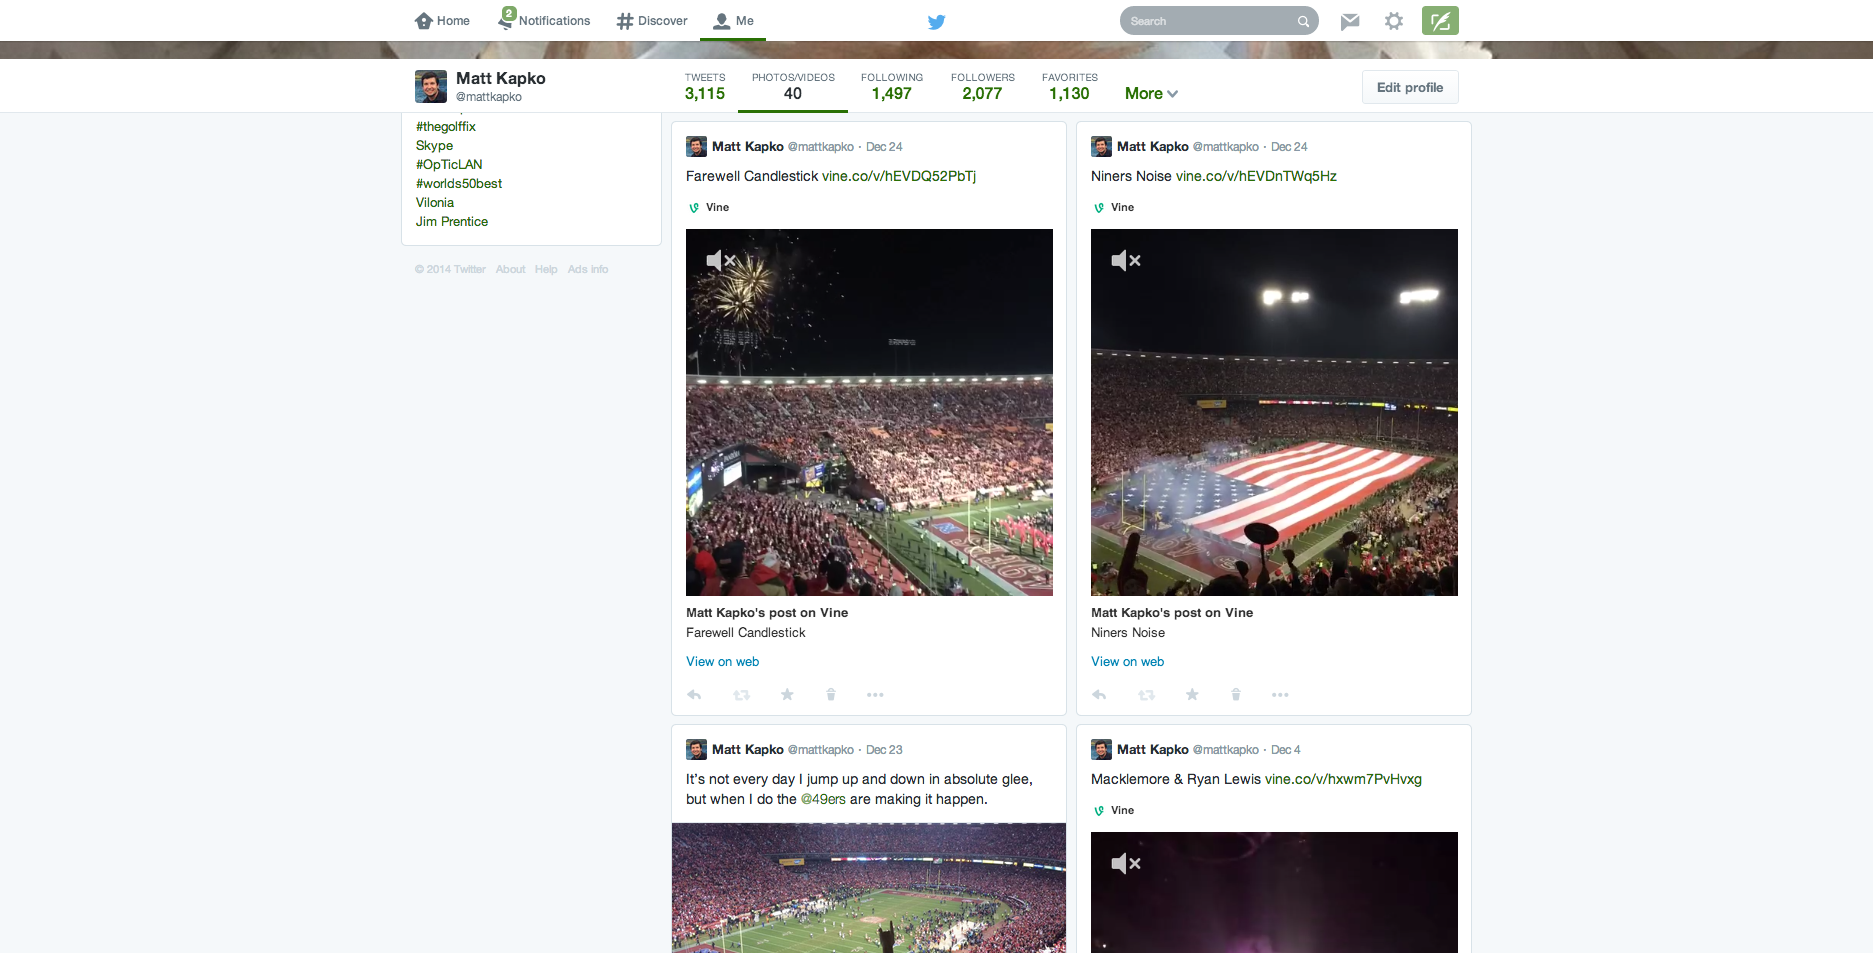 New Twitter media layout